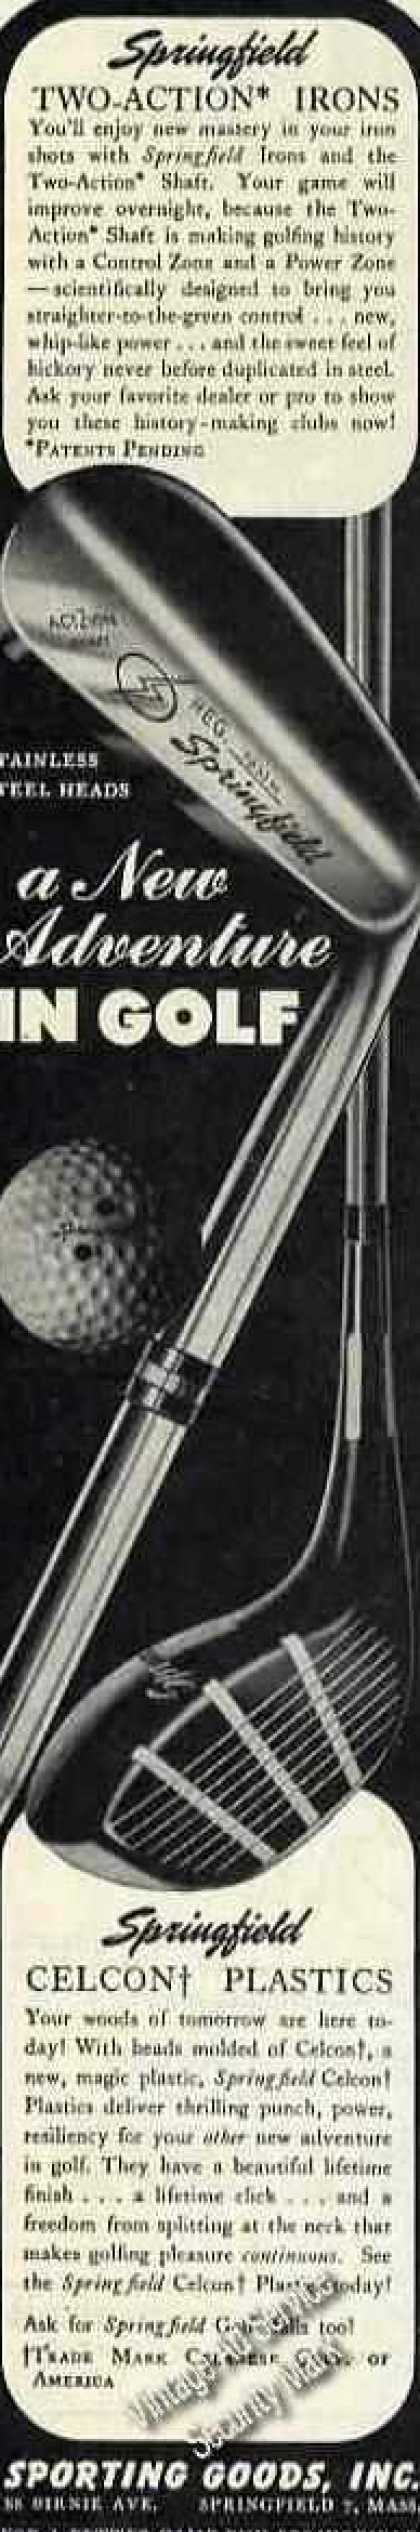 """Springfield Clubs """"A New Adventure In Golf"""" (1947)"""